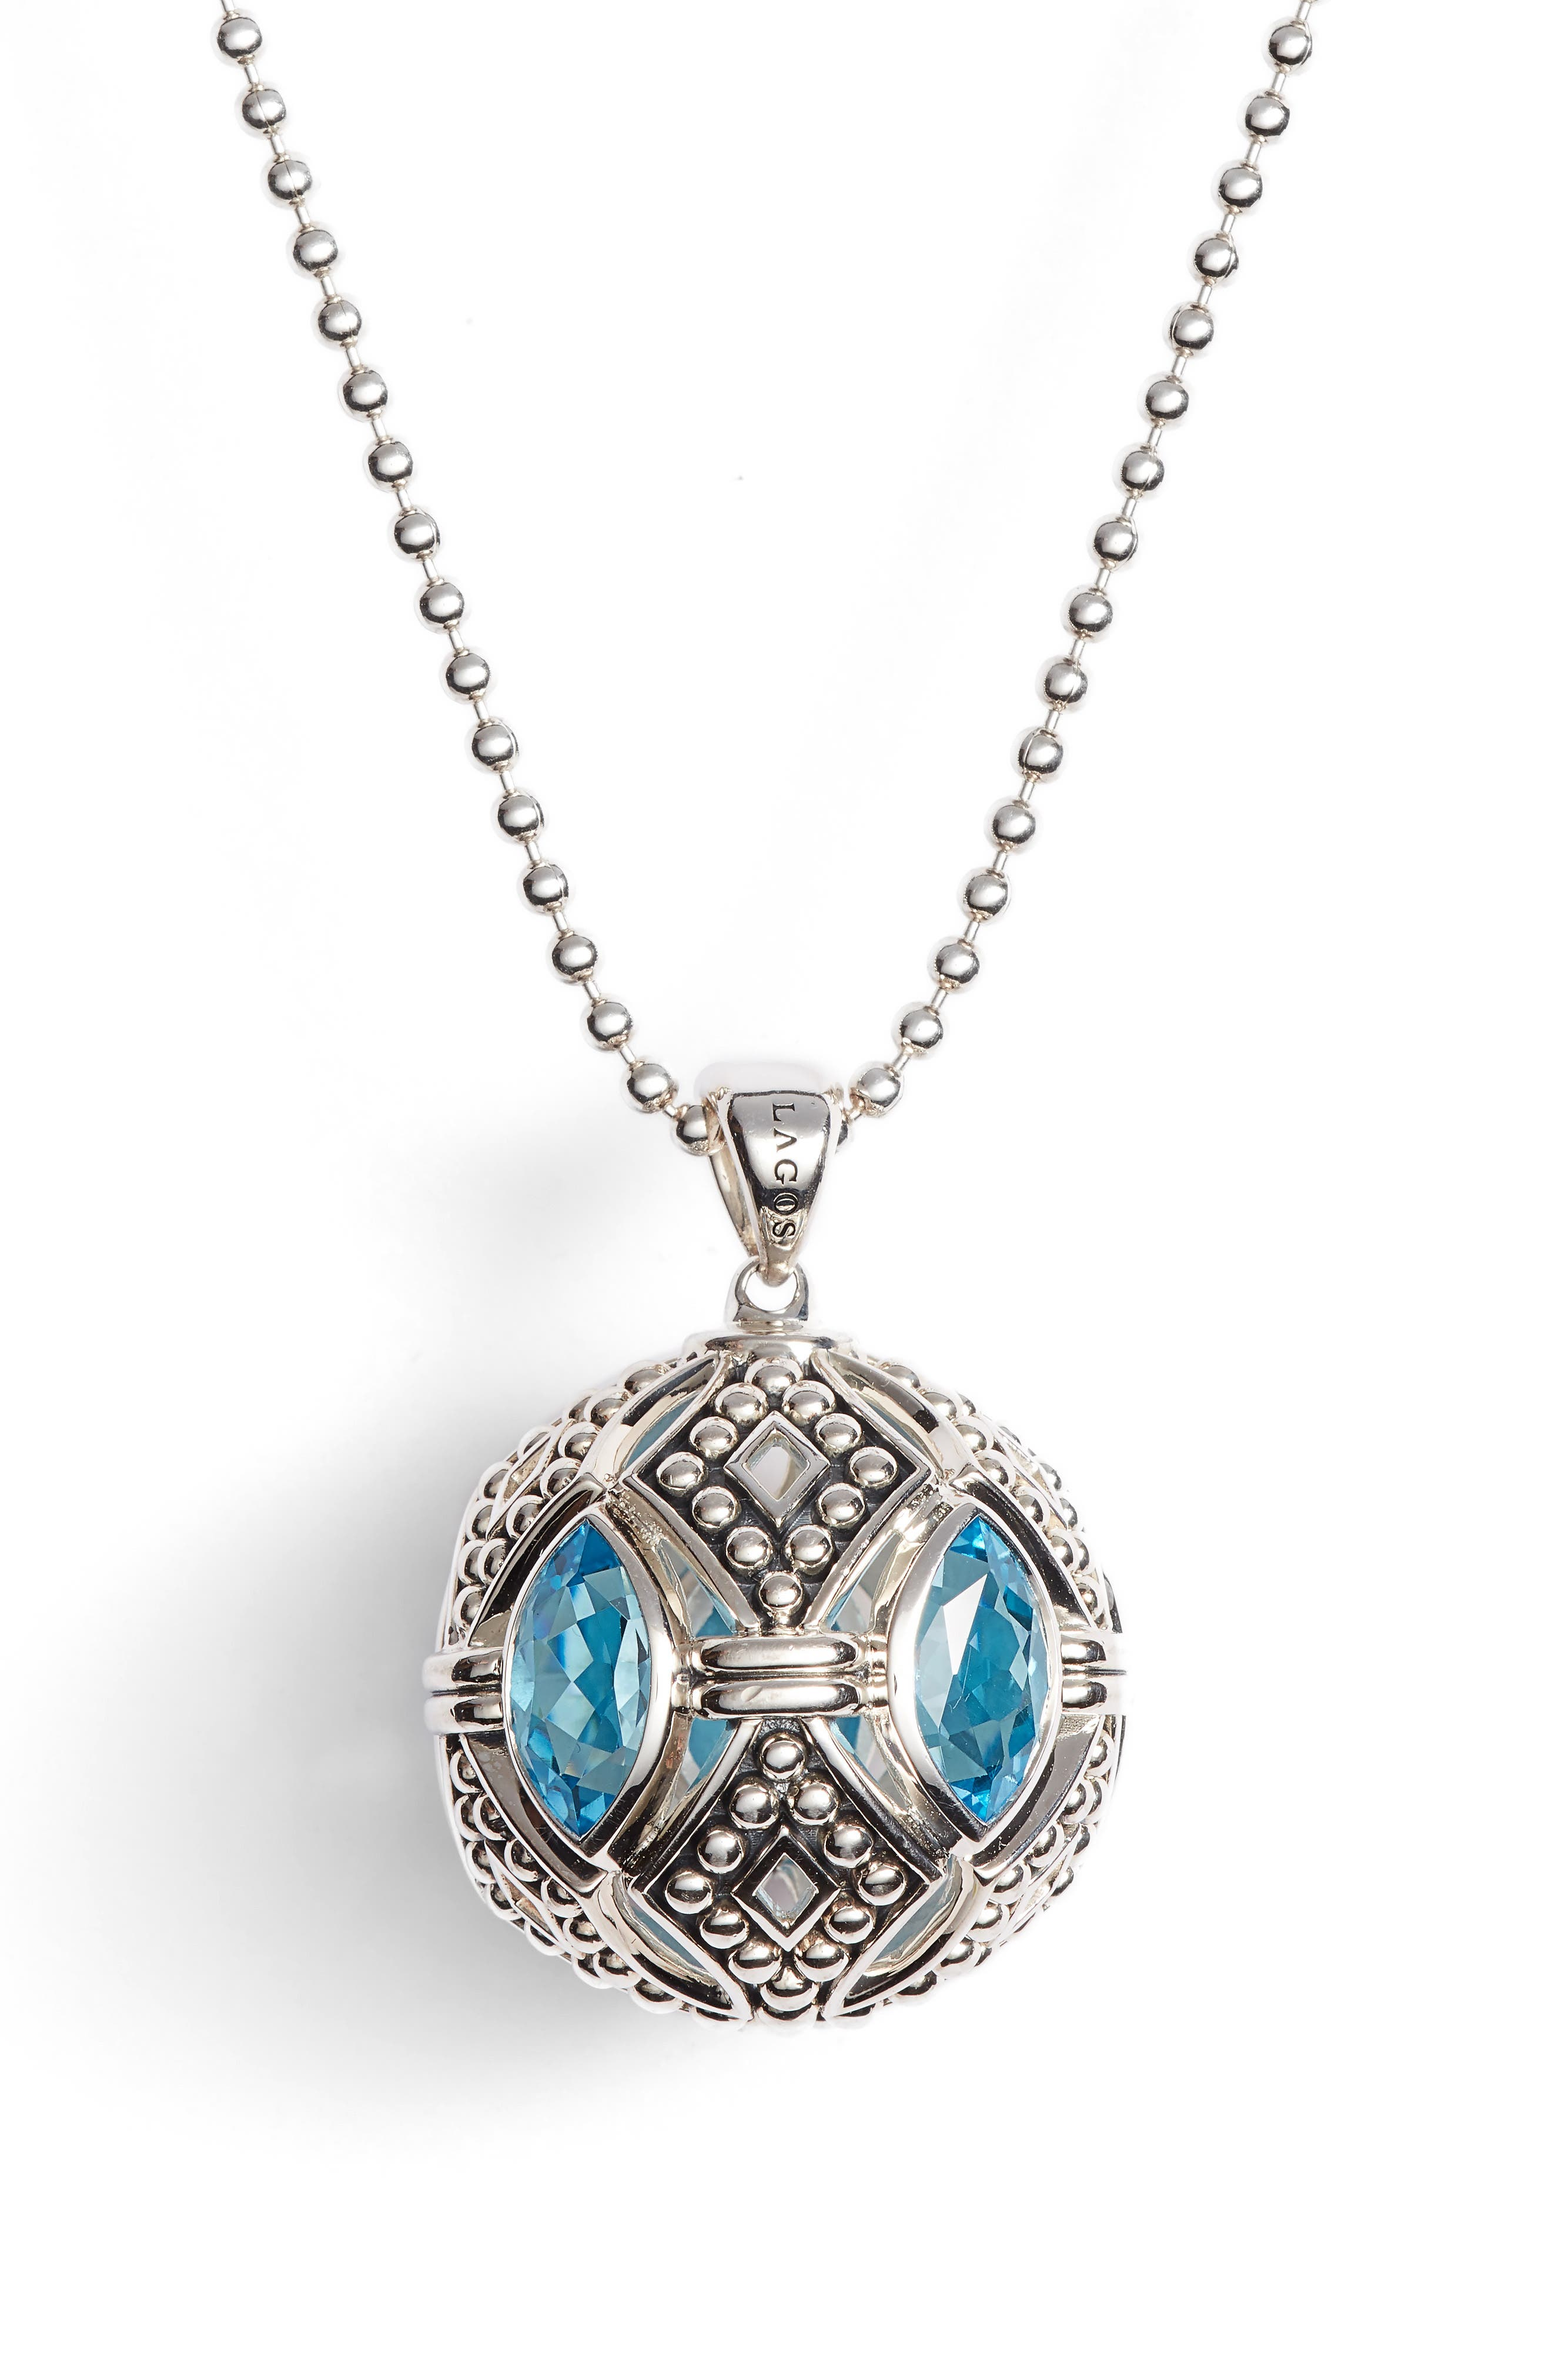 Signature Gifts Marquee Ball Pendant Necklace,                             Alternate thumbnail 3, color,                             SILVER/ BLUE TOPAZ